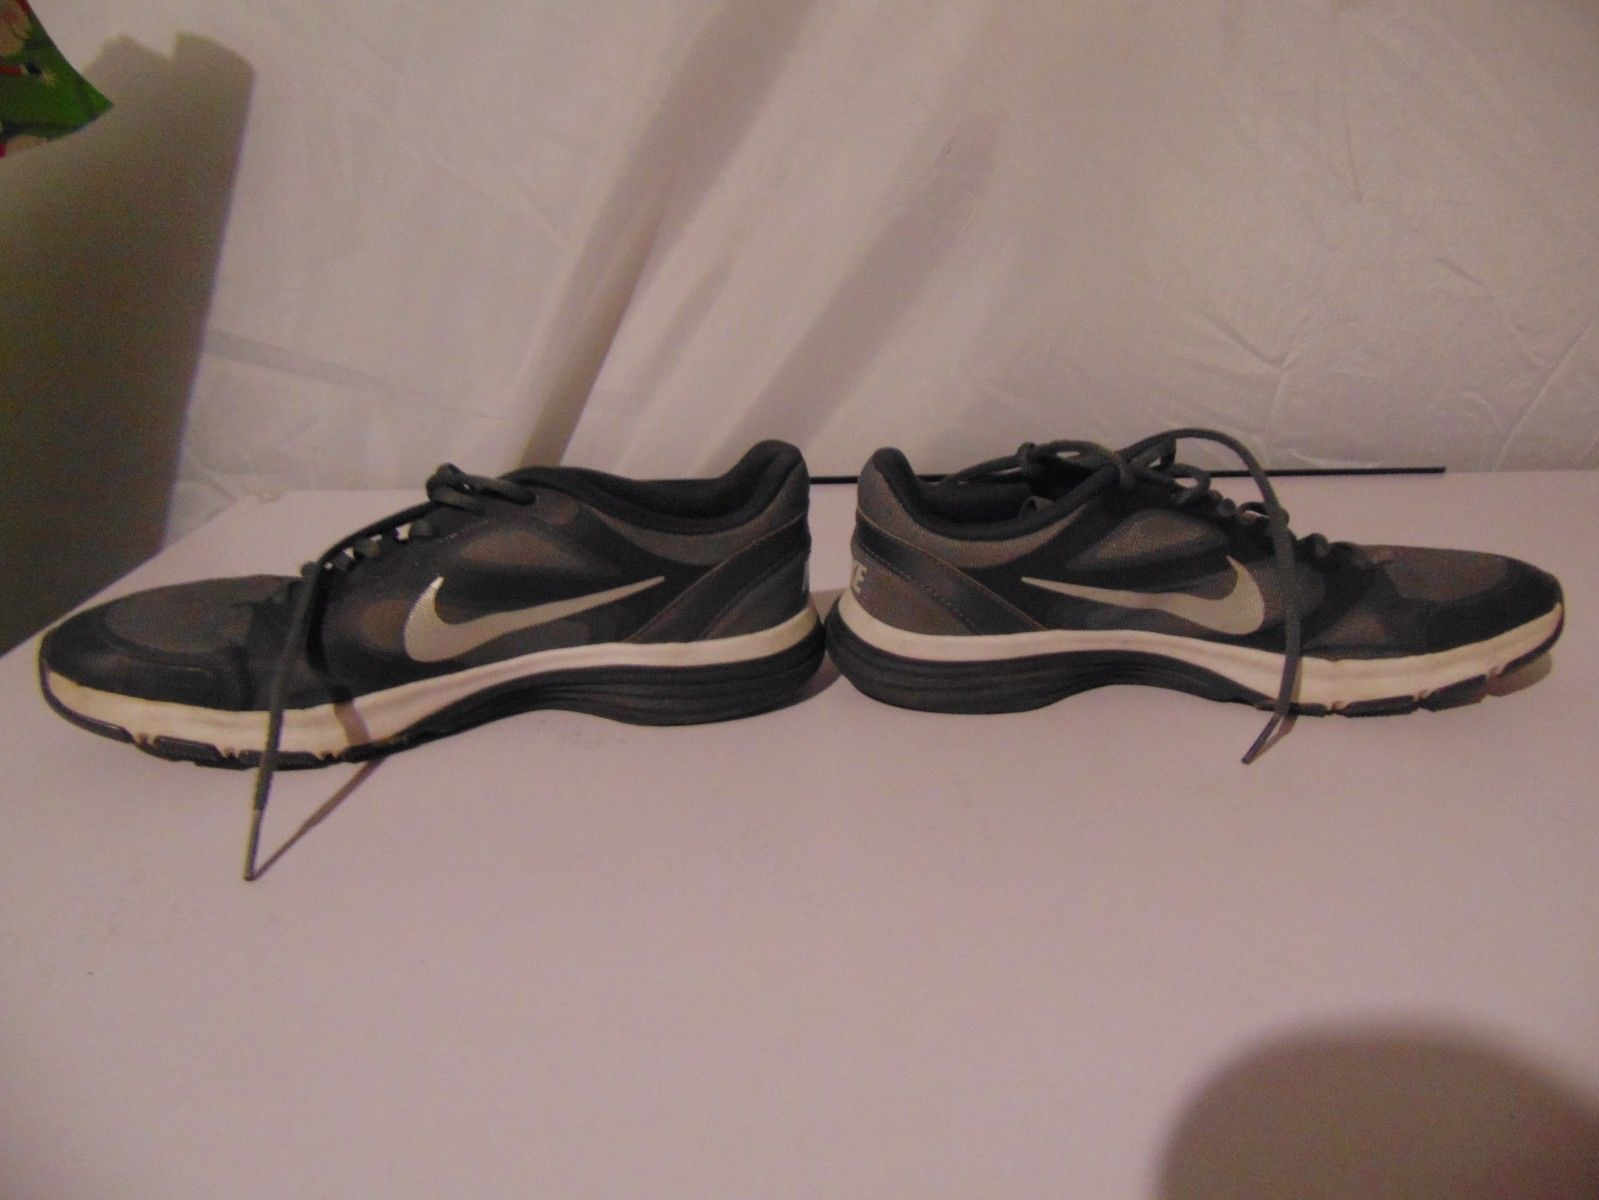 new arrivals f64f7 23d81 Nike Dual Fusion Sneakers Women s Size 8 Running Shoes Black